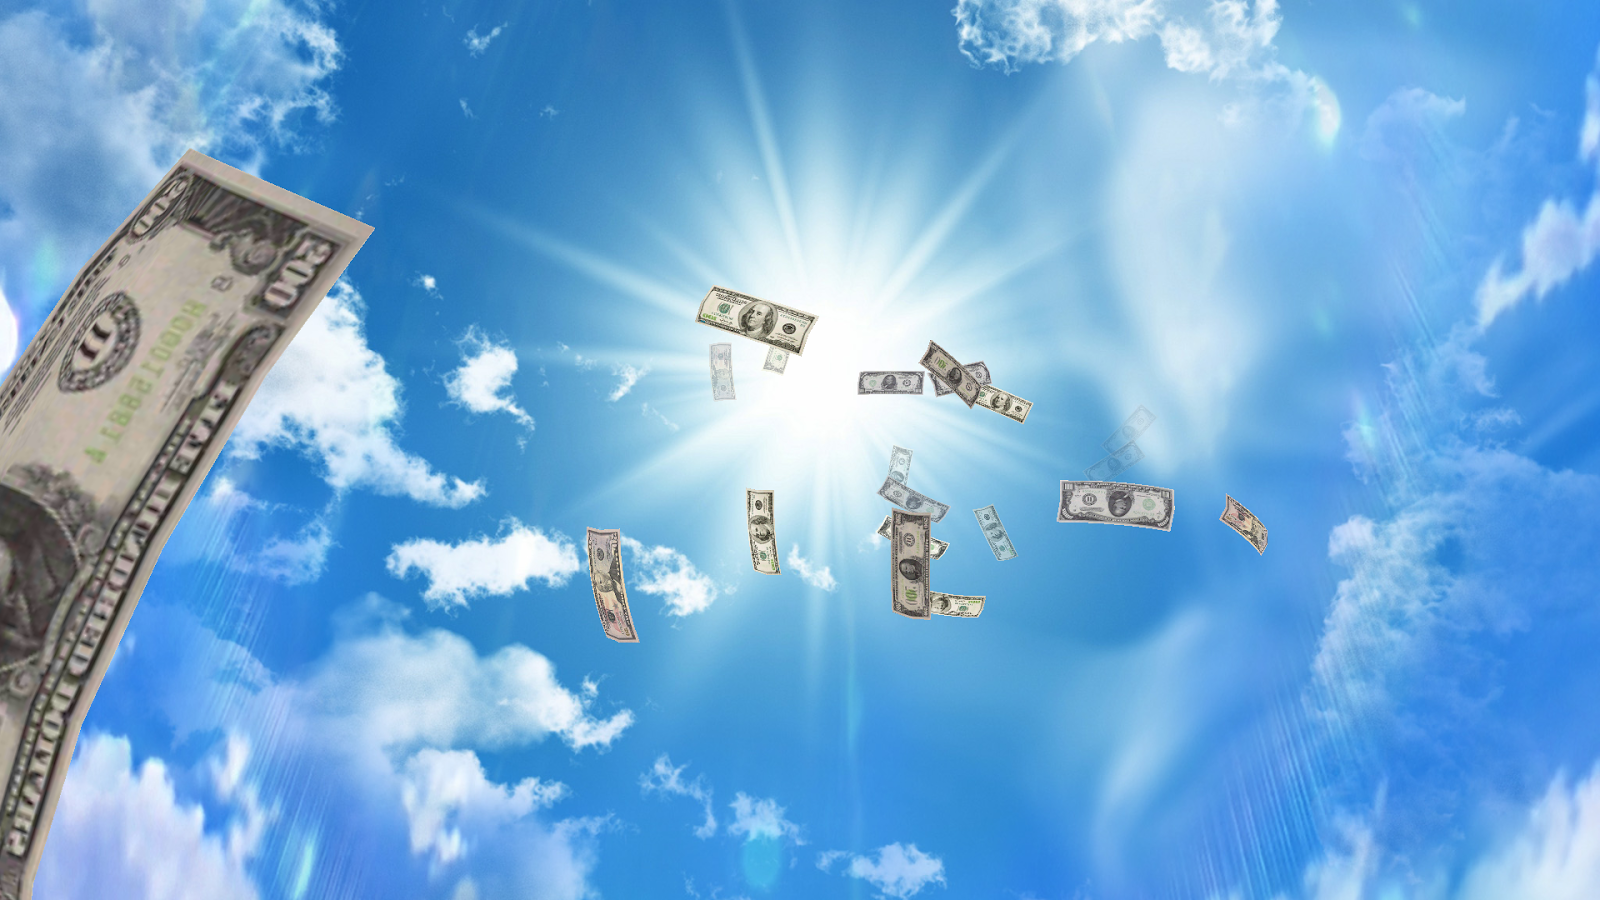 3d Falling Leaves Animated Wallpaper Falling Money 3d Live Wallpaper Android Apps On Google Play